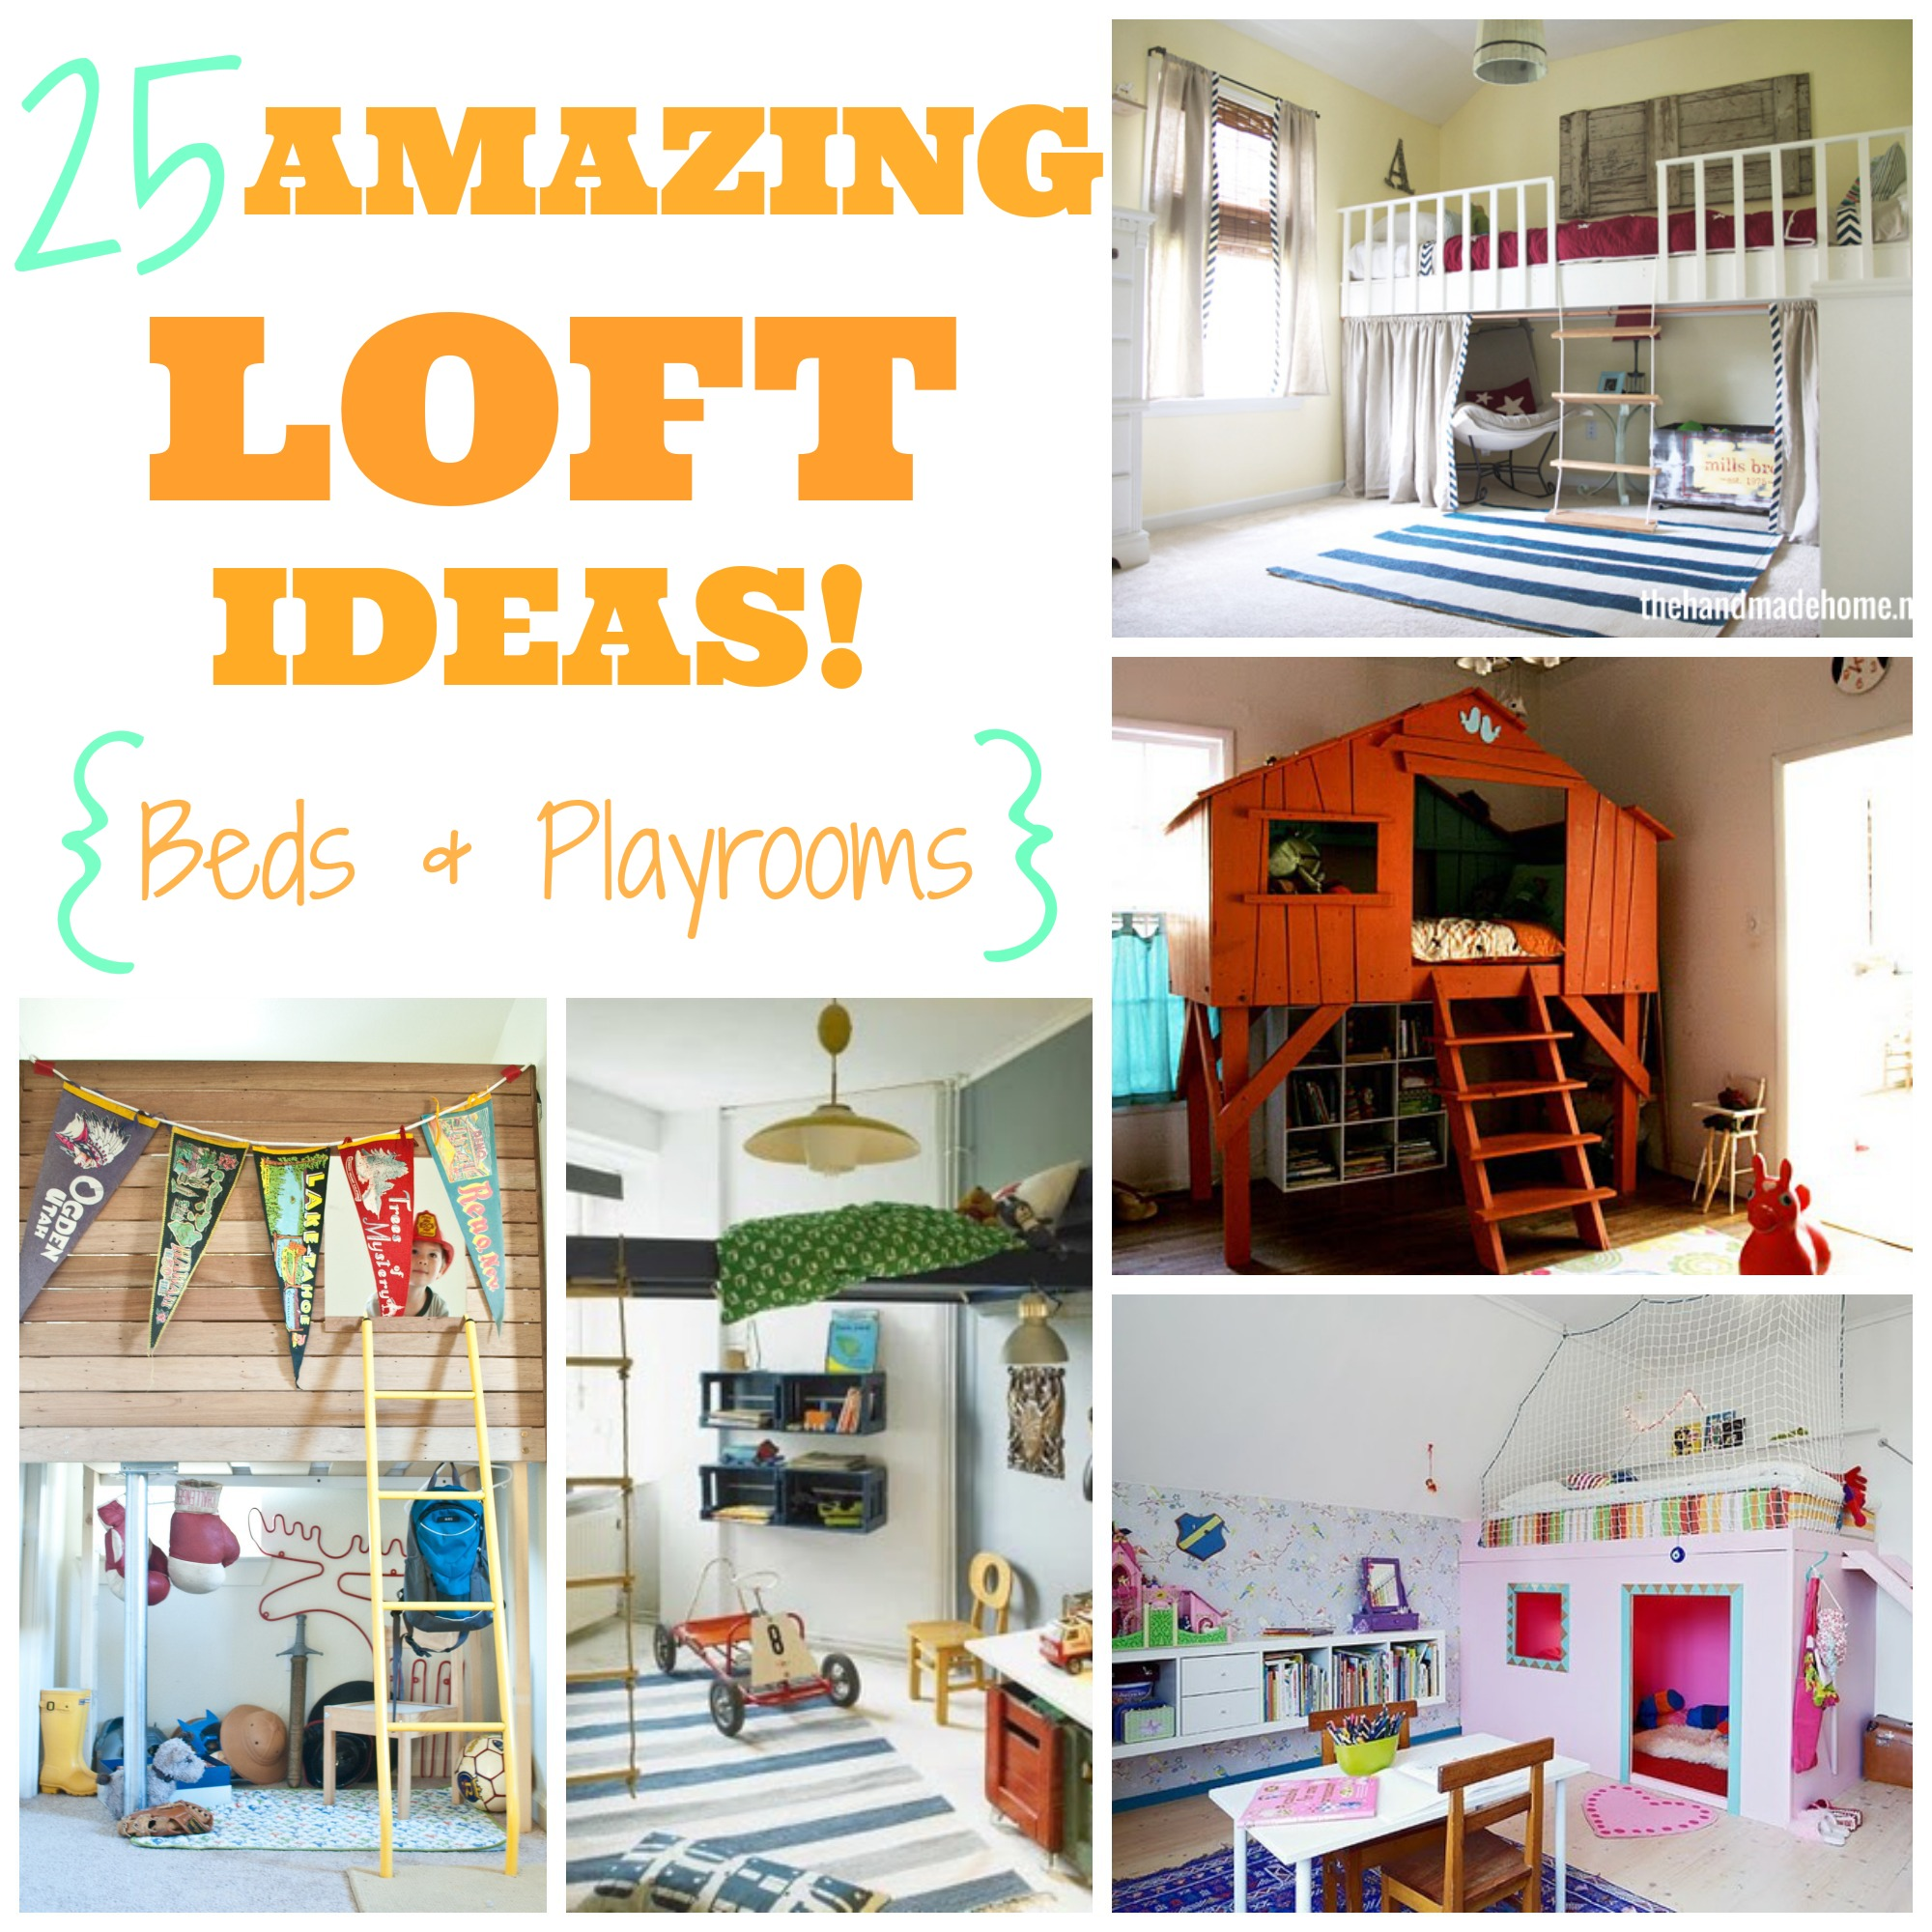 25 amazing loft ideas beds and playrooms design dazzle for Loft furniture ideas